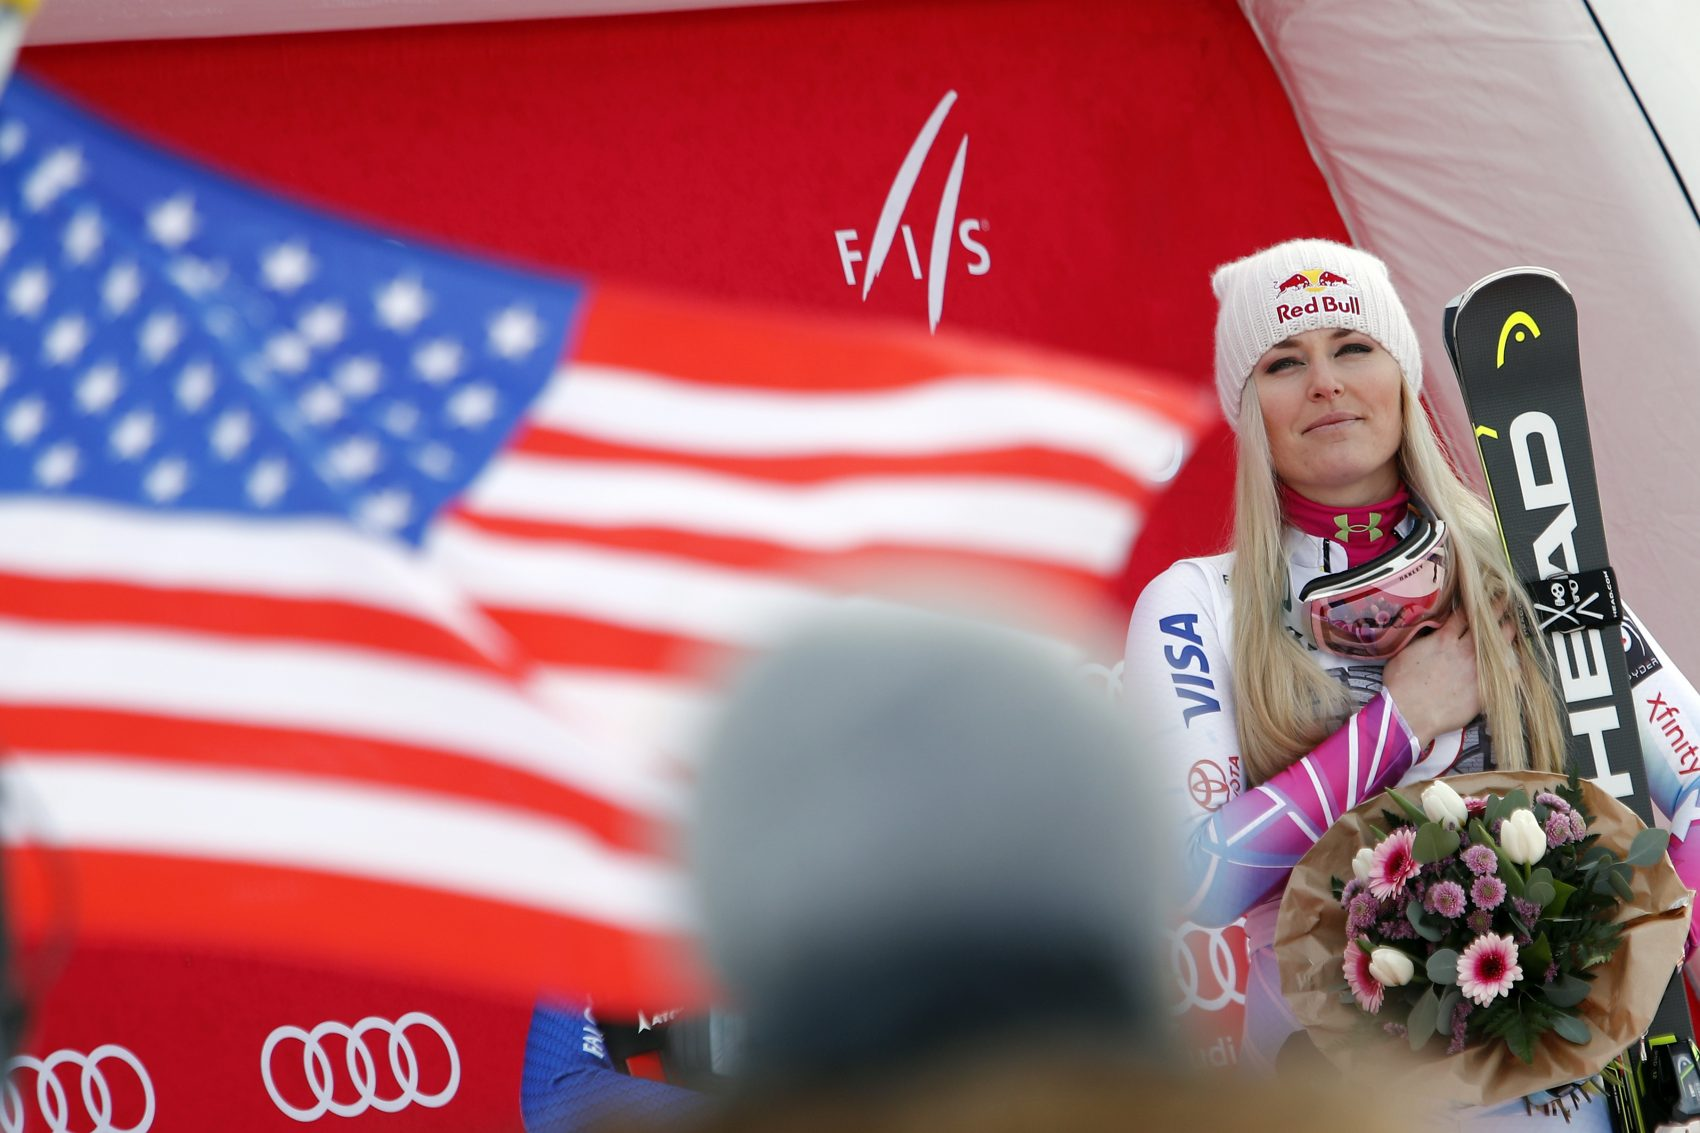 First placed United States' Lindsay Vonn listens to the national anthem at the end of an alpine ski, women's world Cup downhill race, in Garmisch Partenkirchen, Germany, Saturday Feb. 3, 2018. (Gabriele Facciotti/AP)